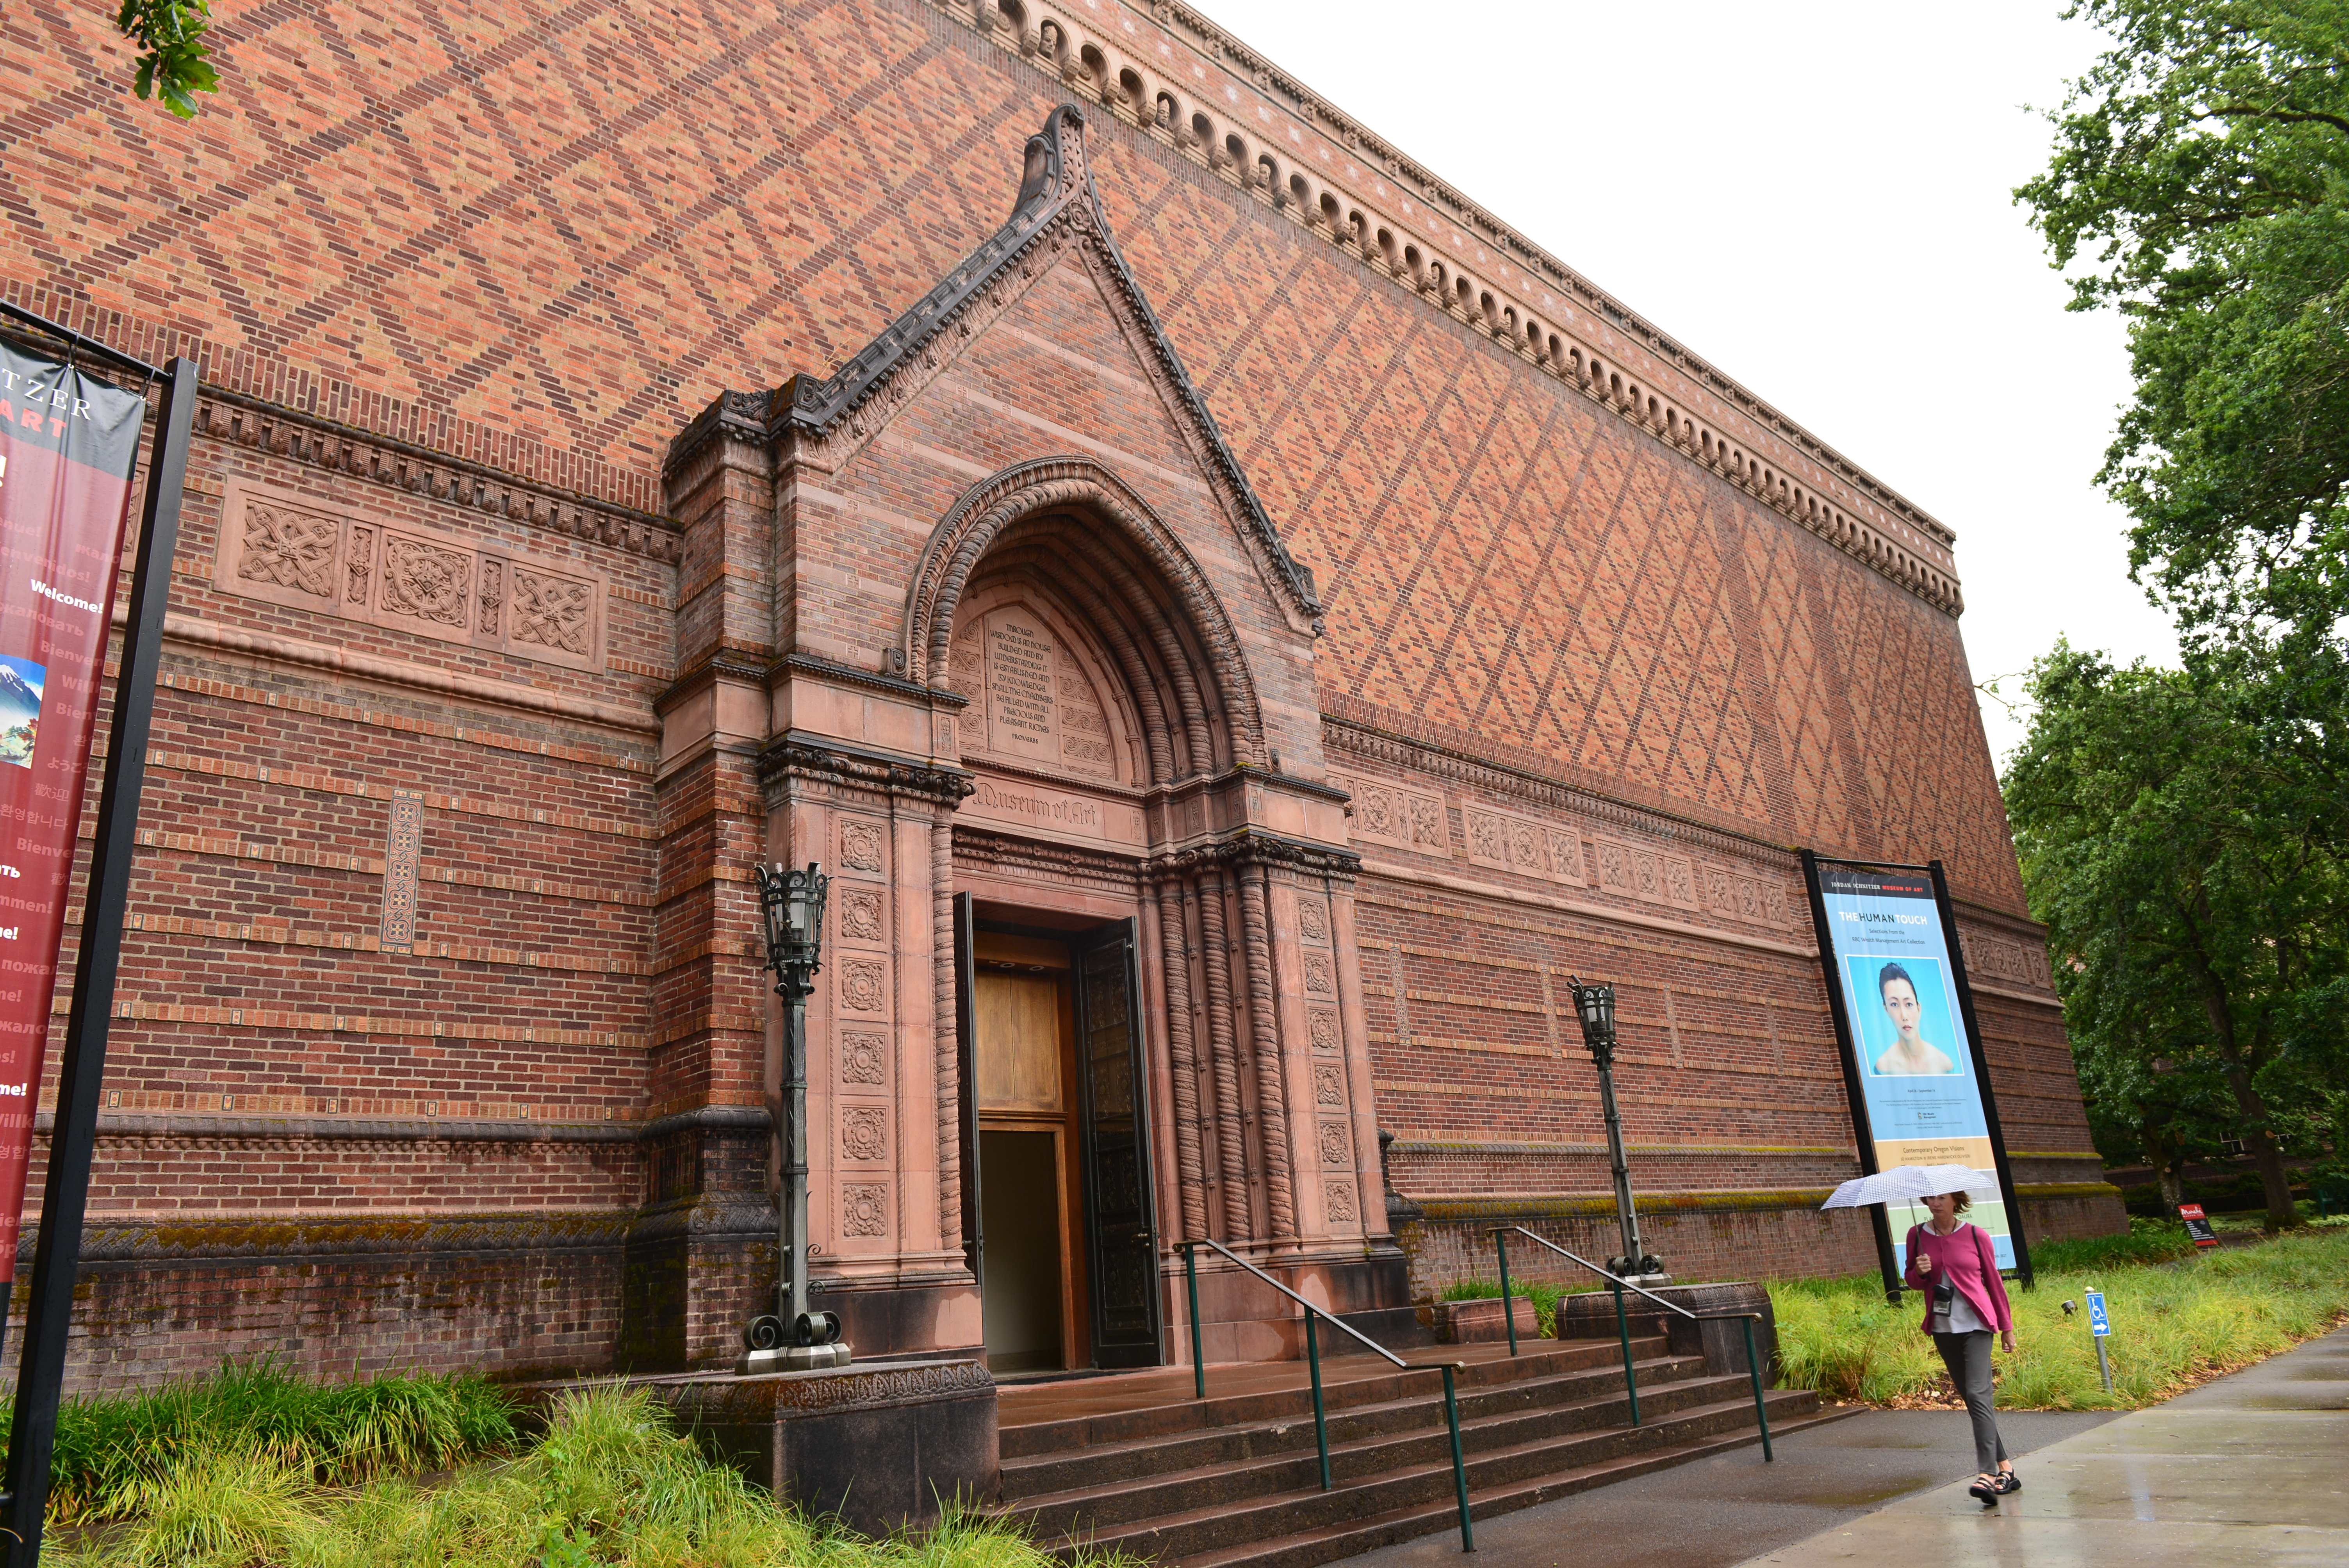 The original part of the museum is listed on the National Register of Historic Places for its eclectic architecture.